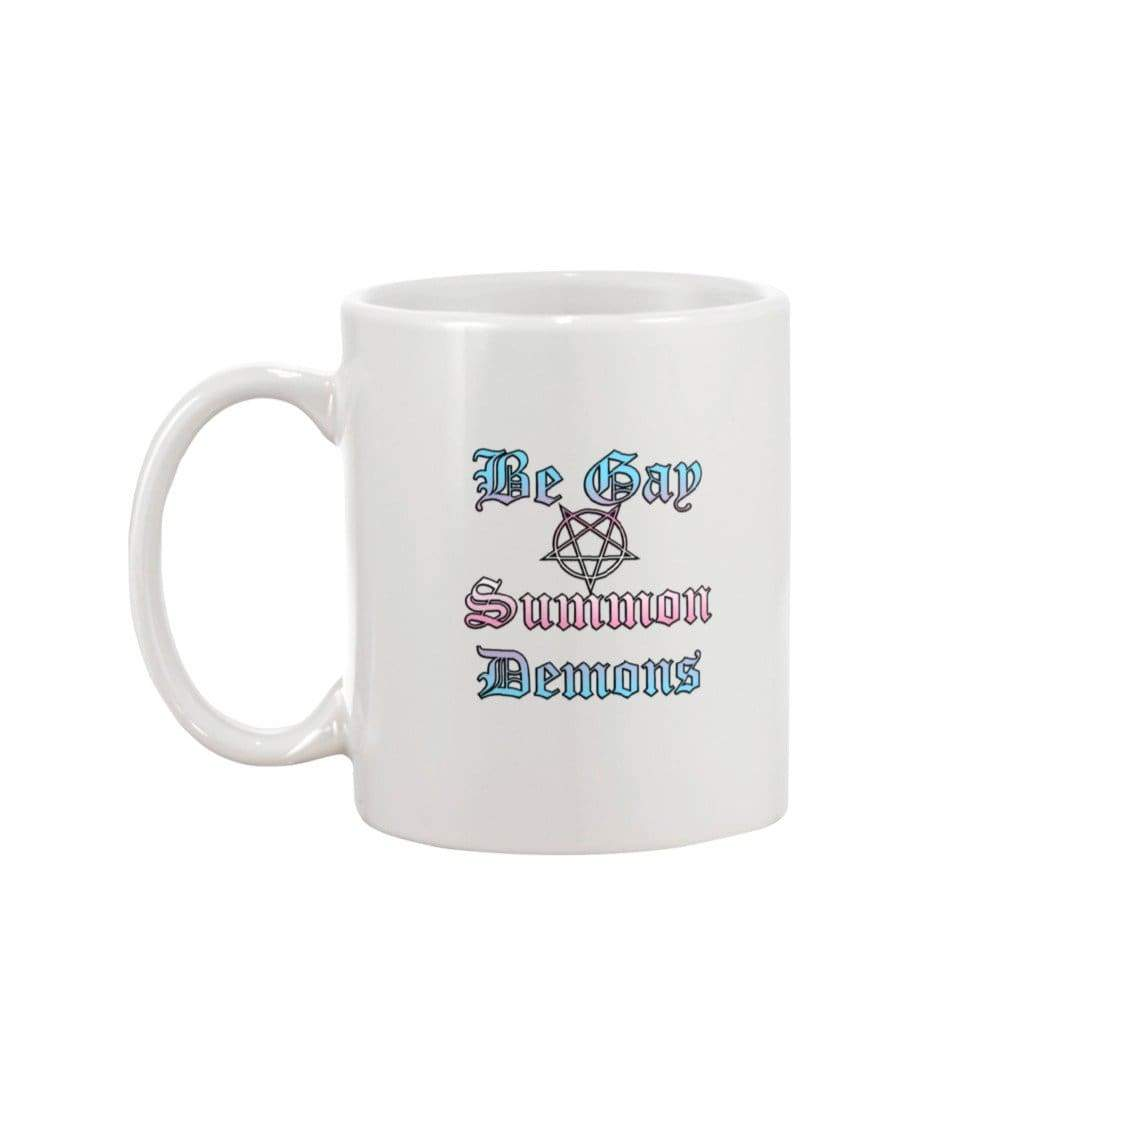 Dice Priori Be Gay Summon Demons Trans 11oz Coffee Mug - Mugs